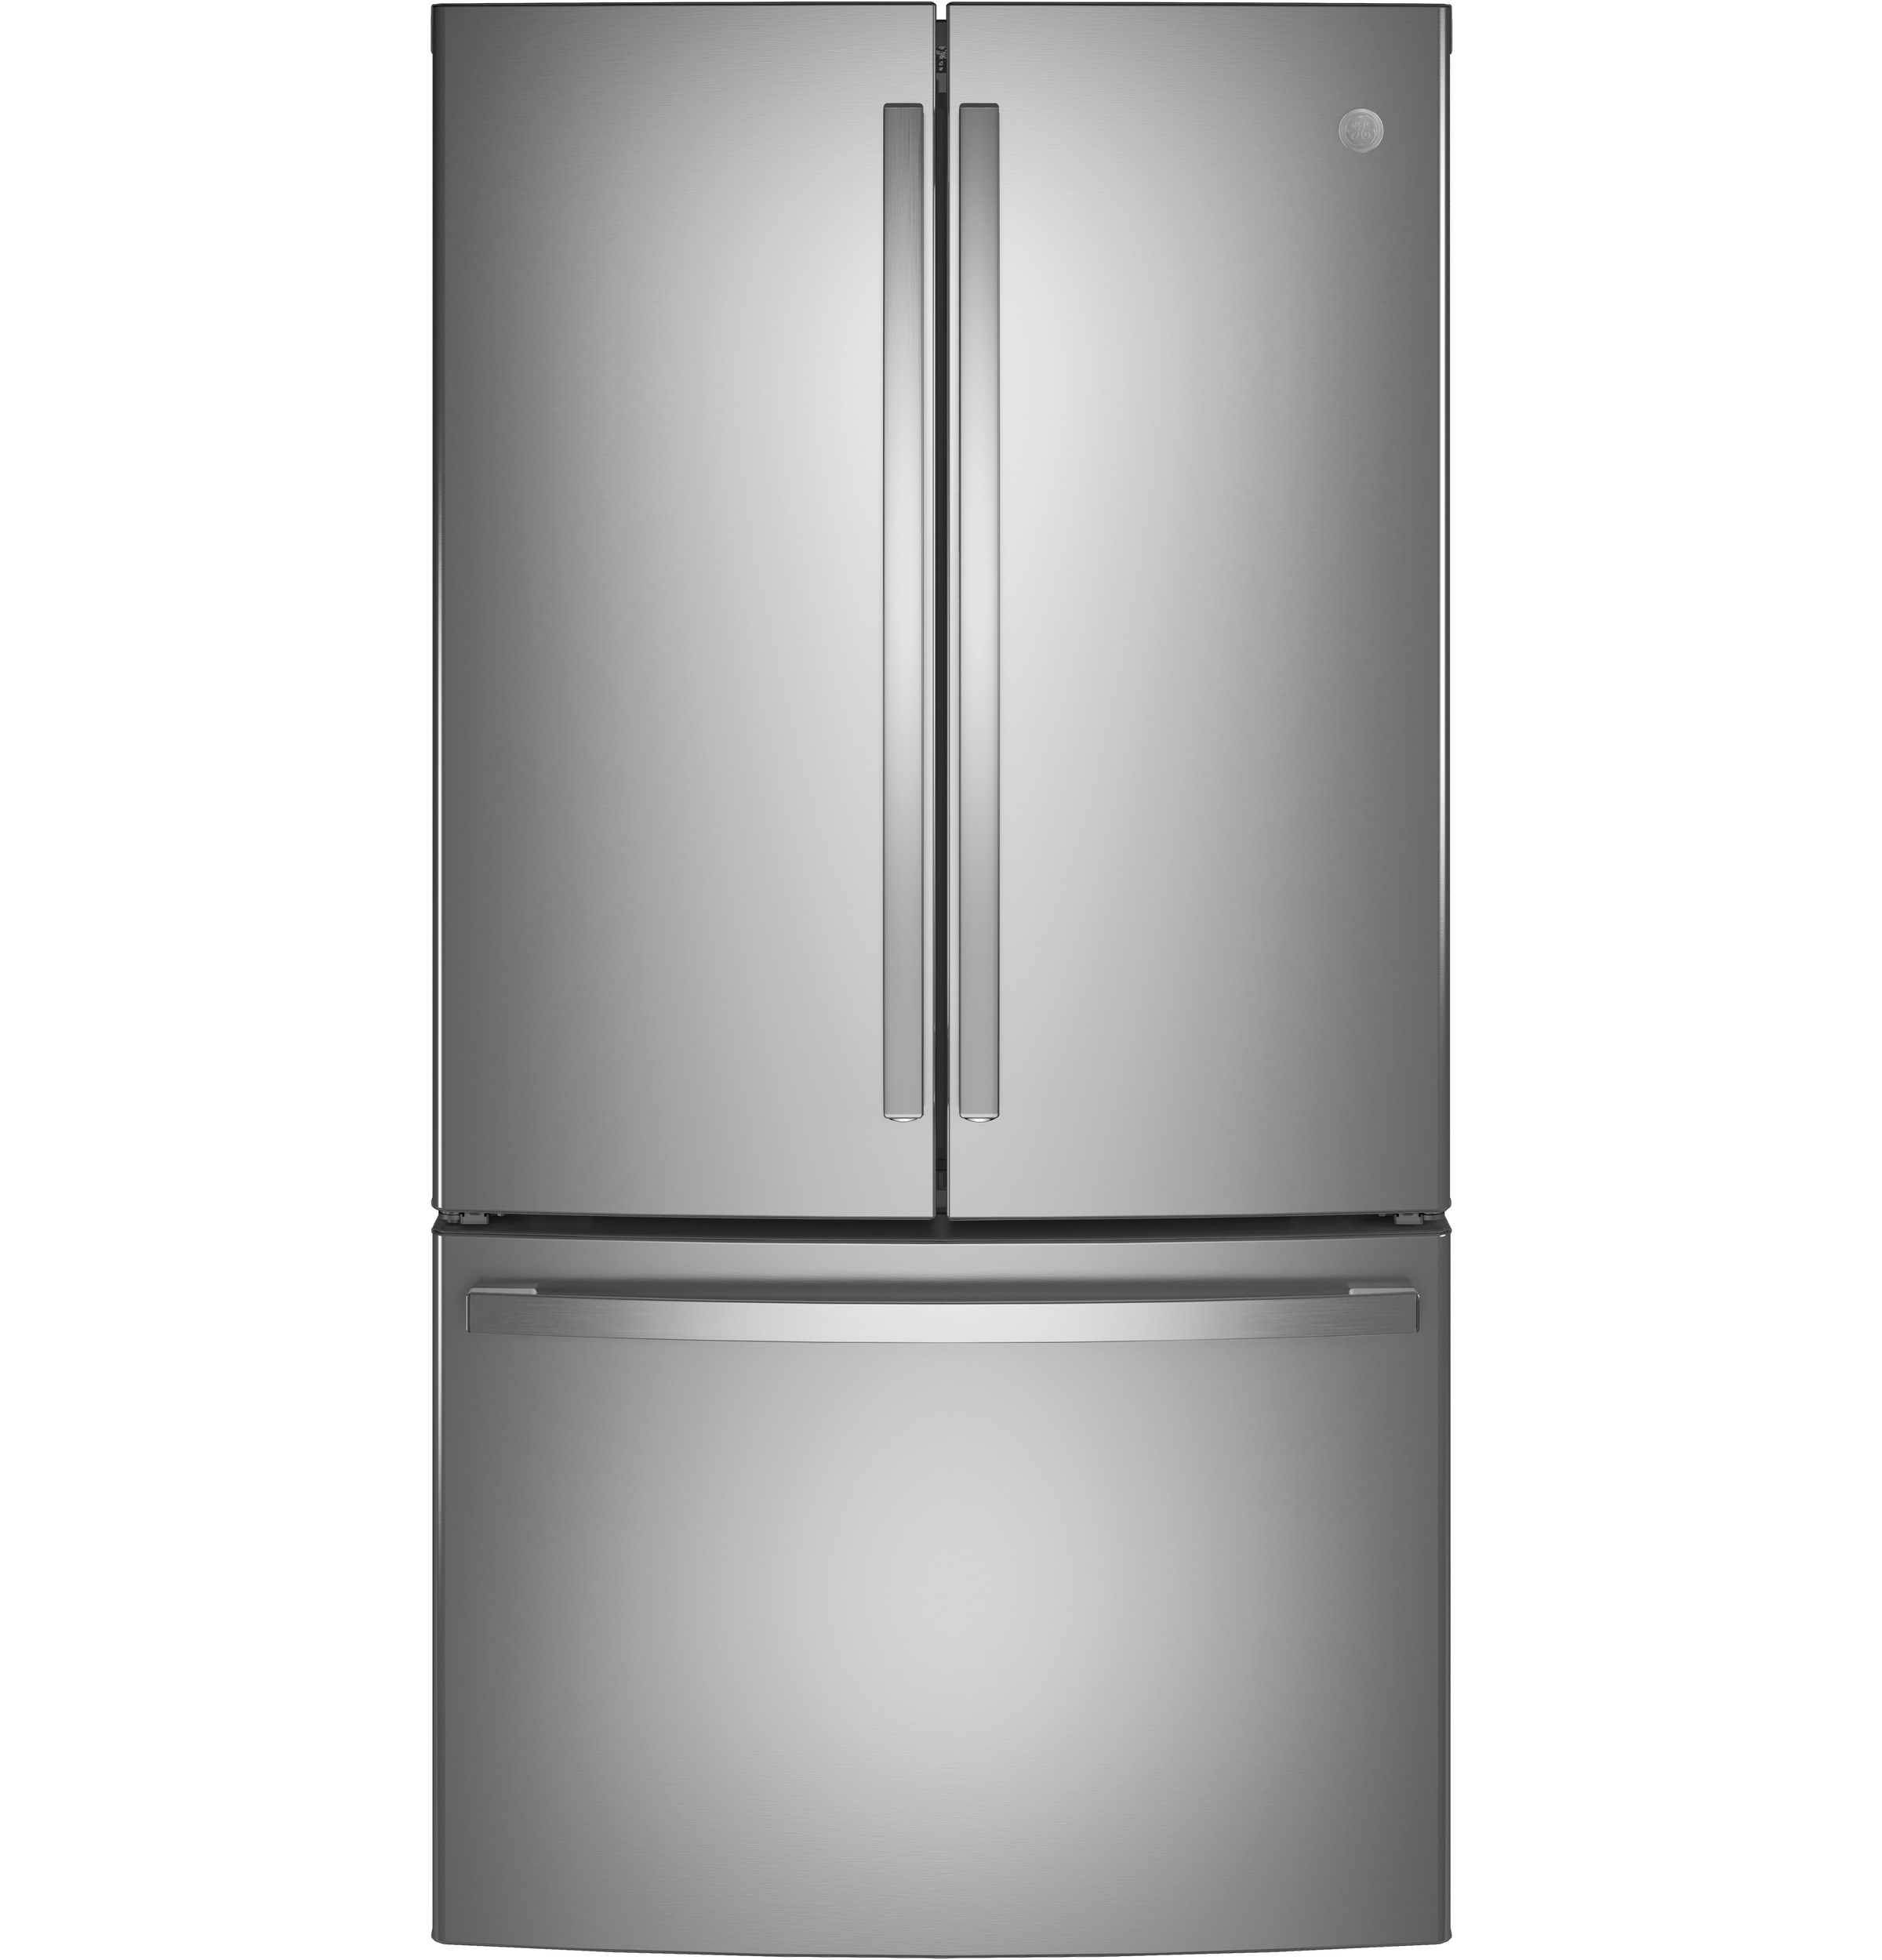 Model: GNE29GYNFS | GE GE® ENERGY STAR® 28.7 Cu. Ft. Fingerprint Resistant French-Door Refrigerator